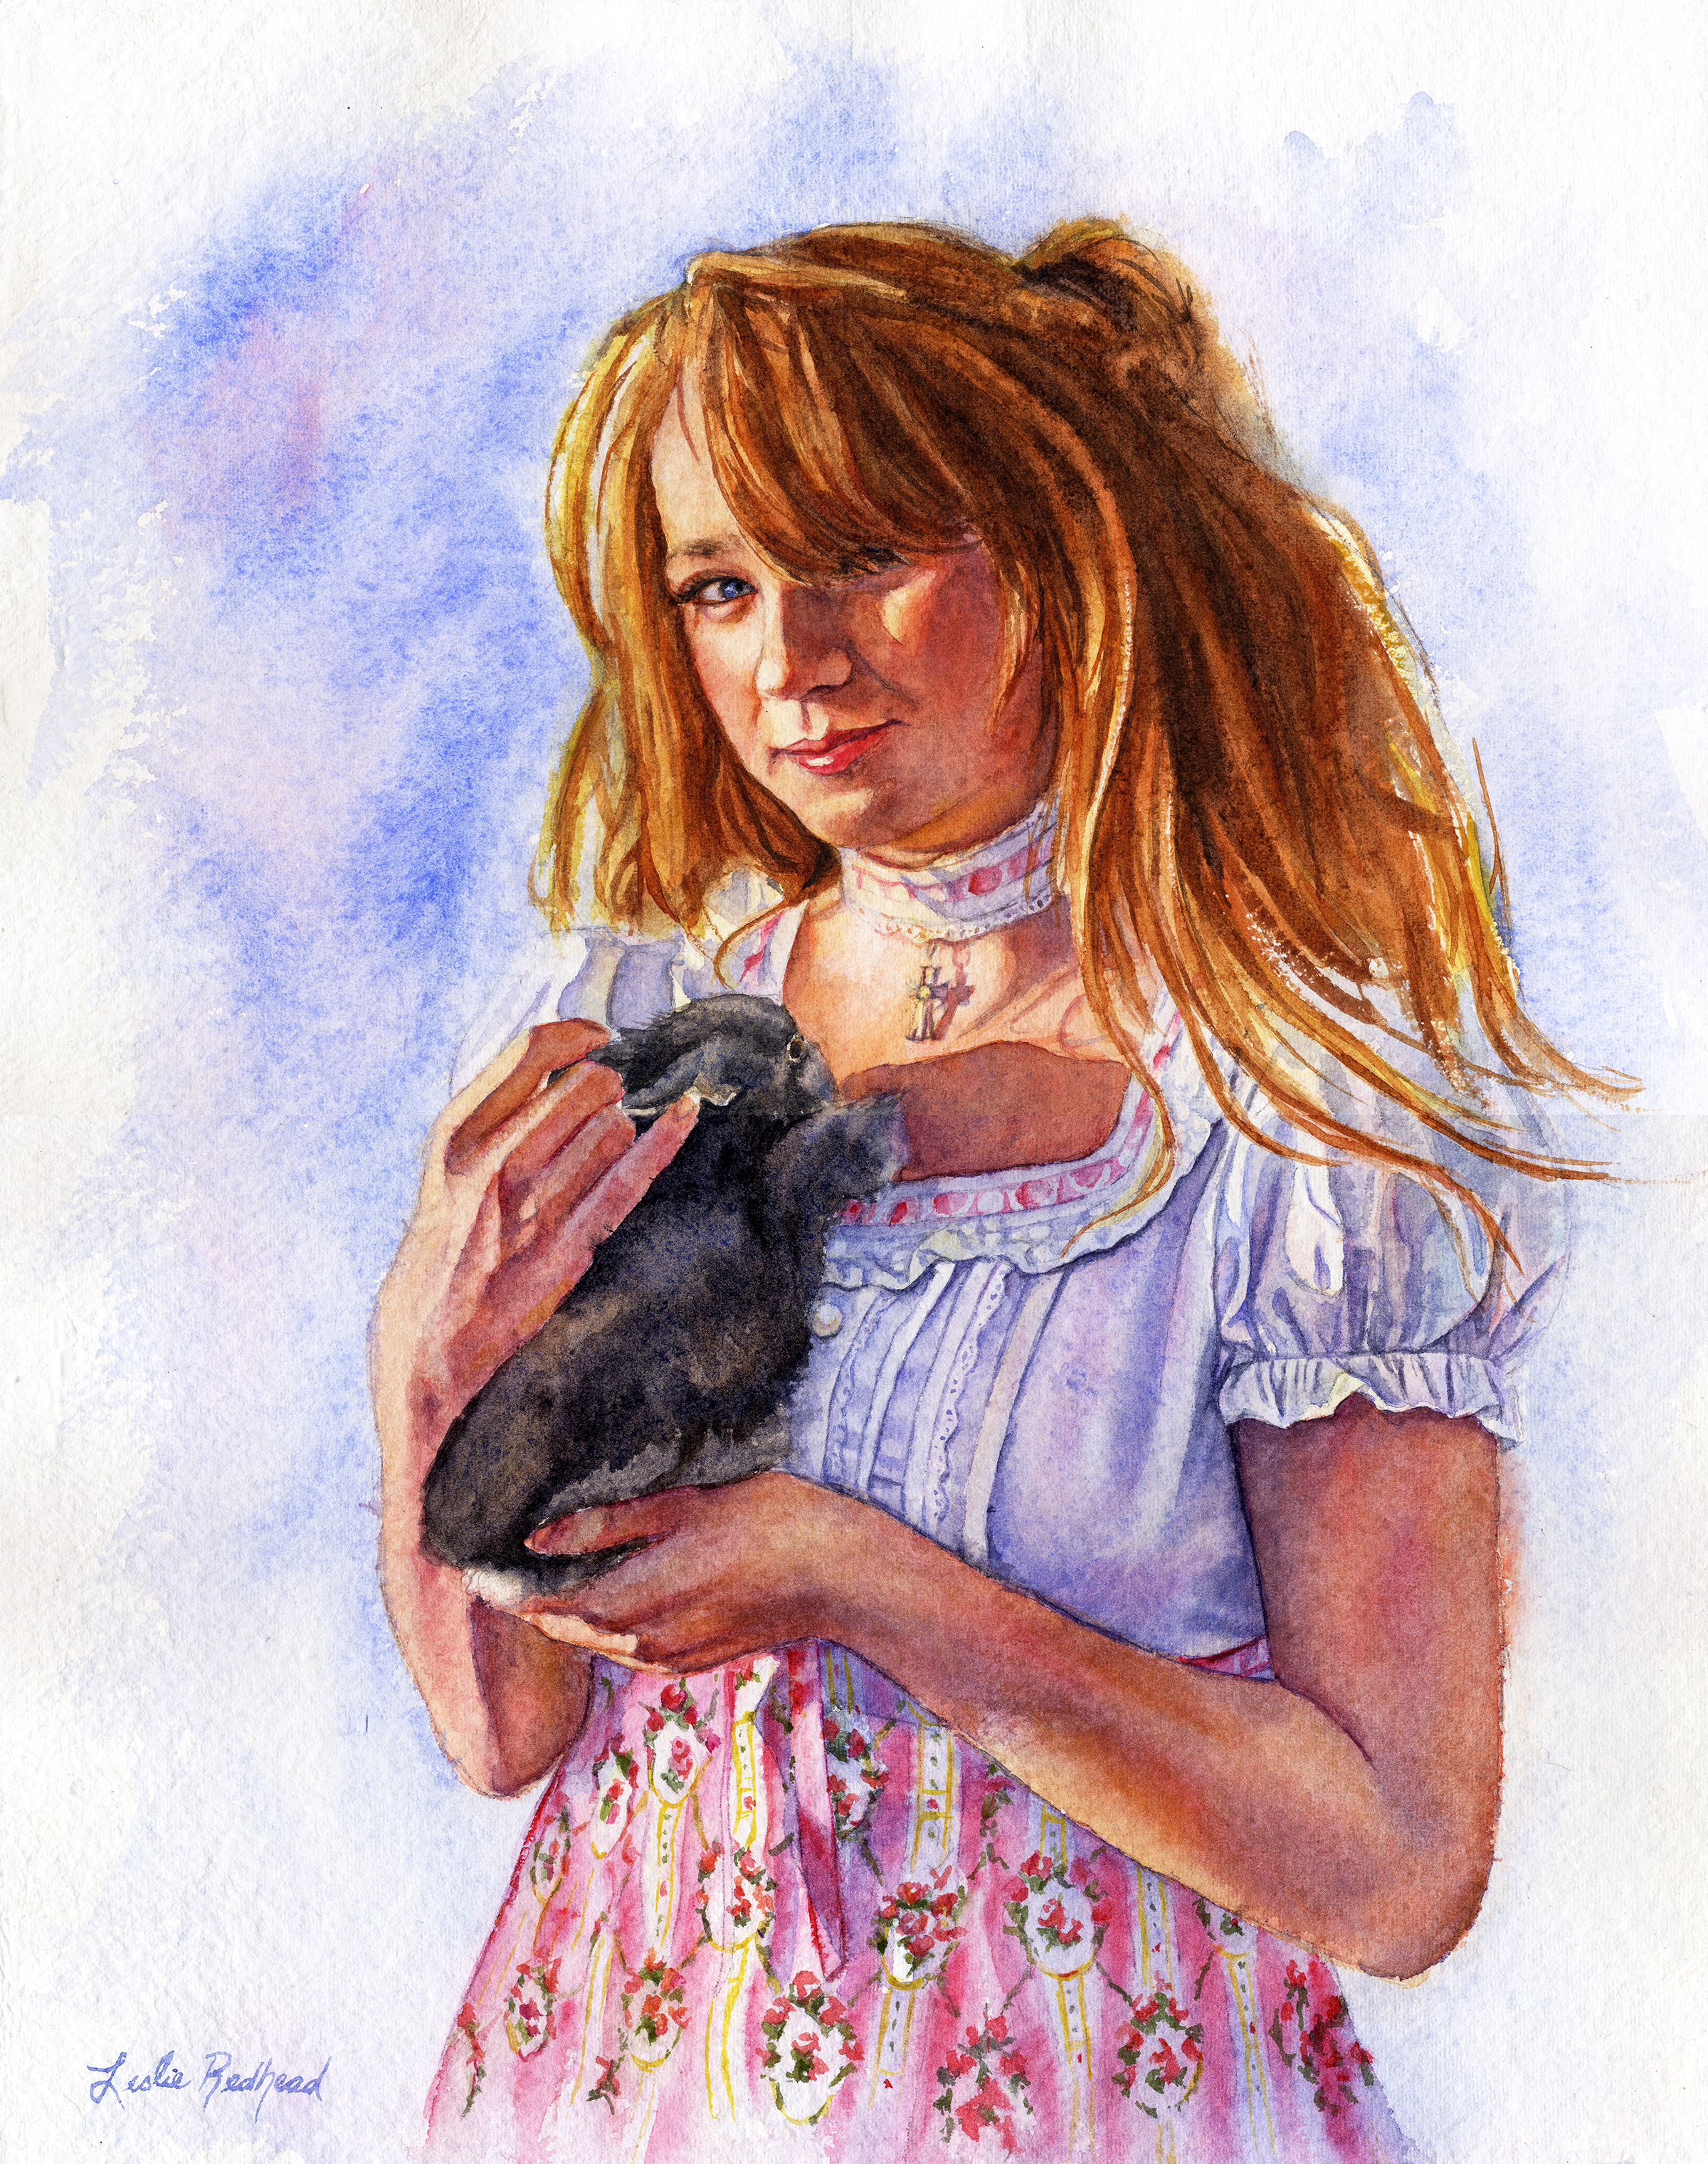 jesseca'srabbit,16x20, sold